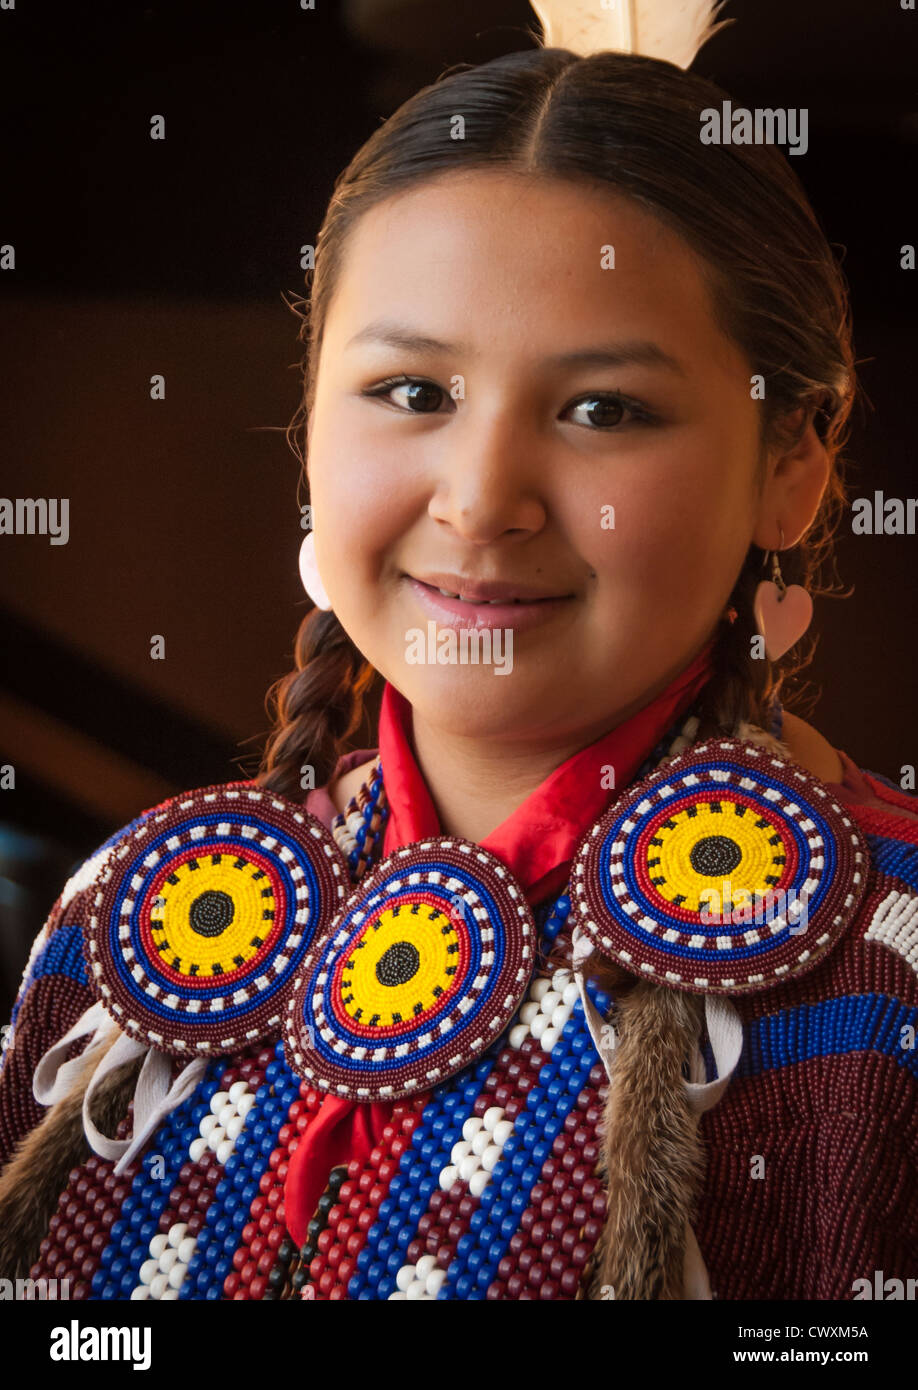 Native American dancer at the annual Lewis and Clark Festival in Great Falls Montana - Stock Image